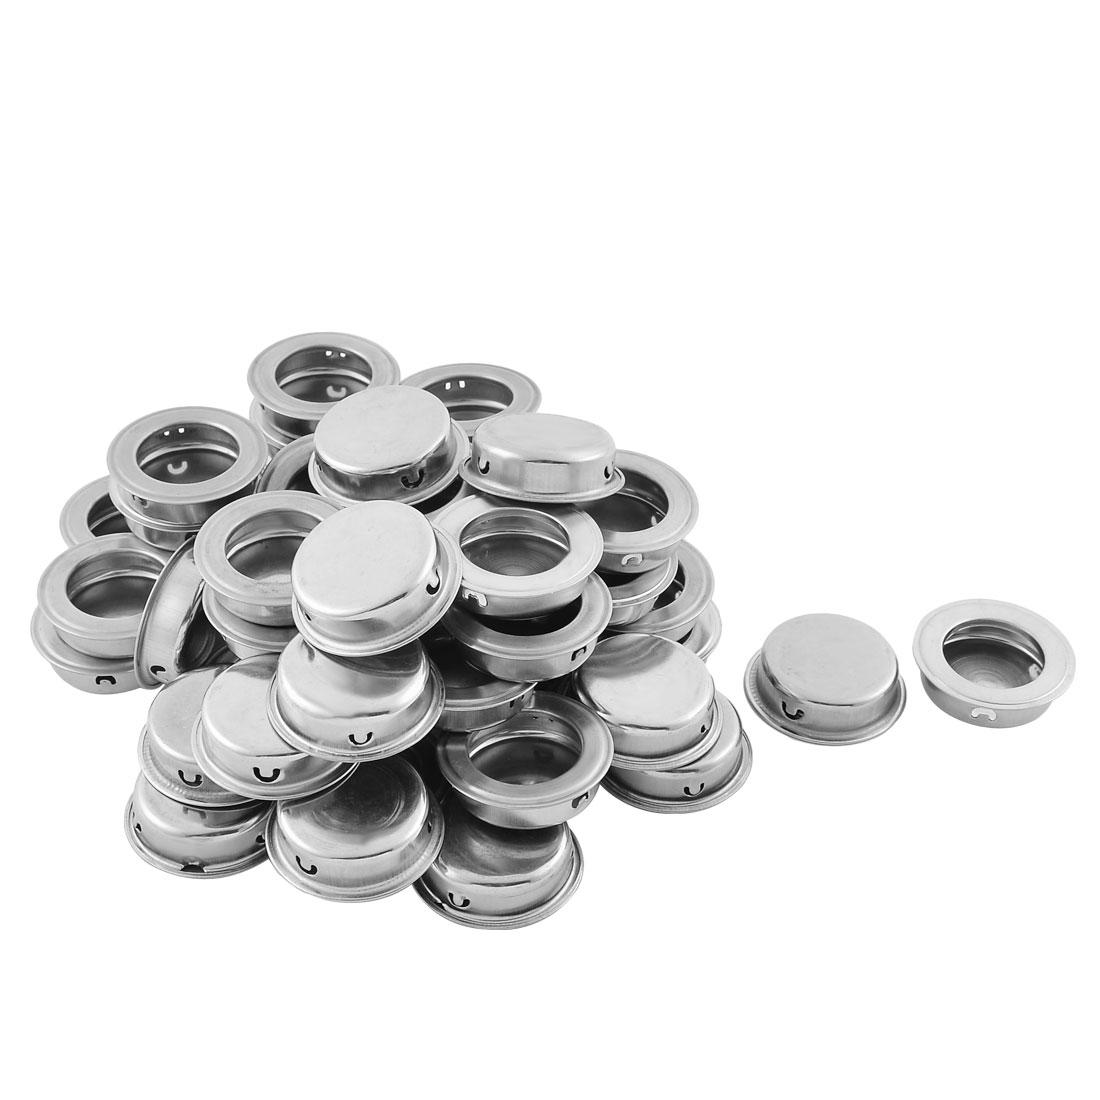 Cabinet Kitchen Furniture Stainless Steel Round Flat Recessed Flush Pull Handles 50PCS